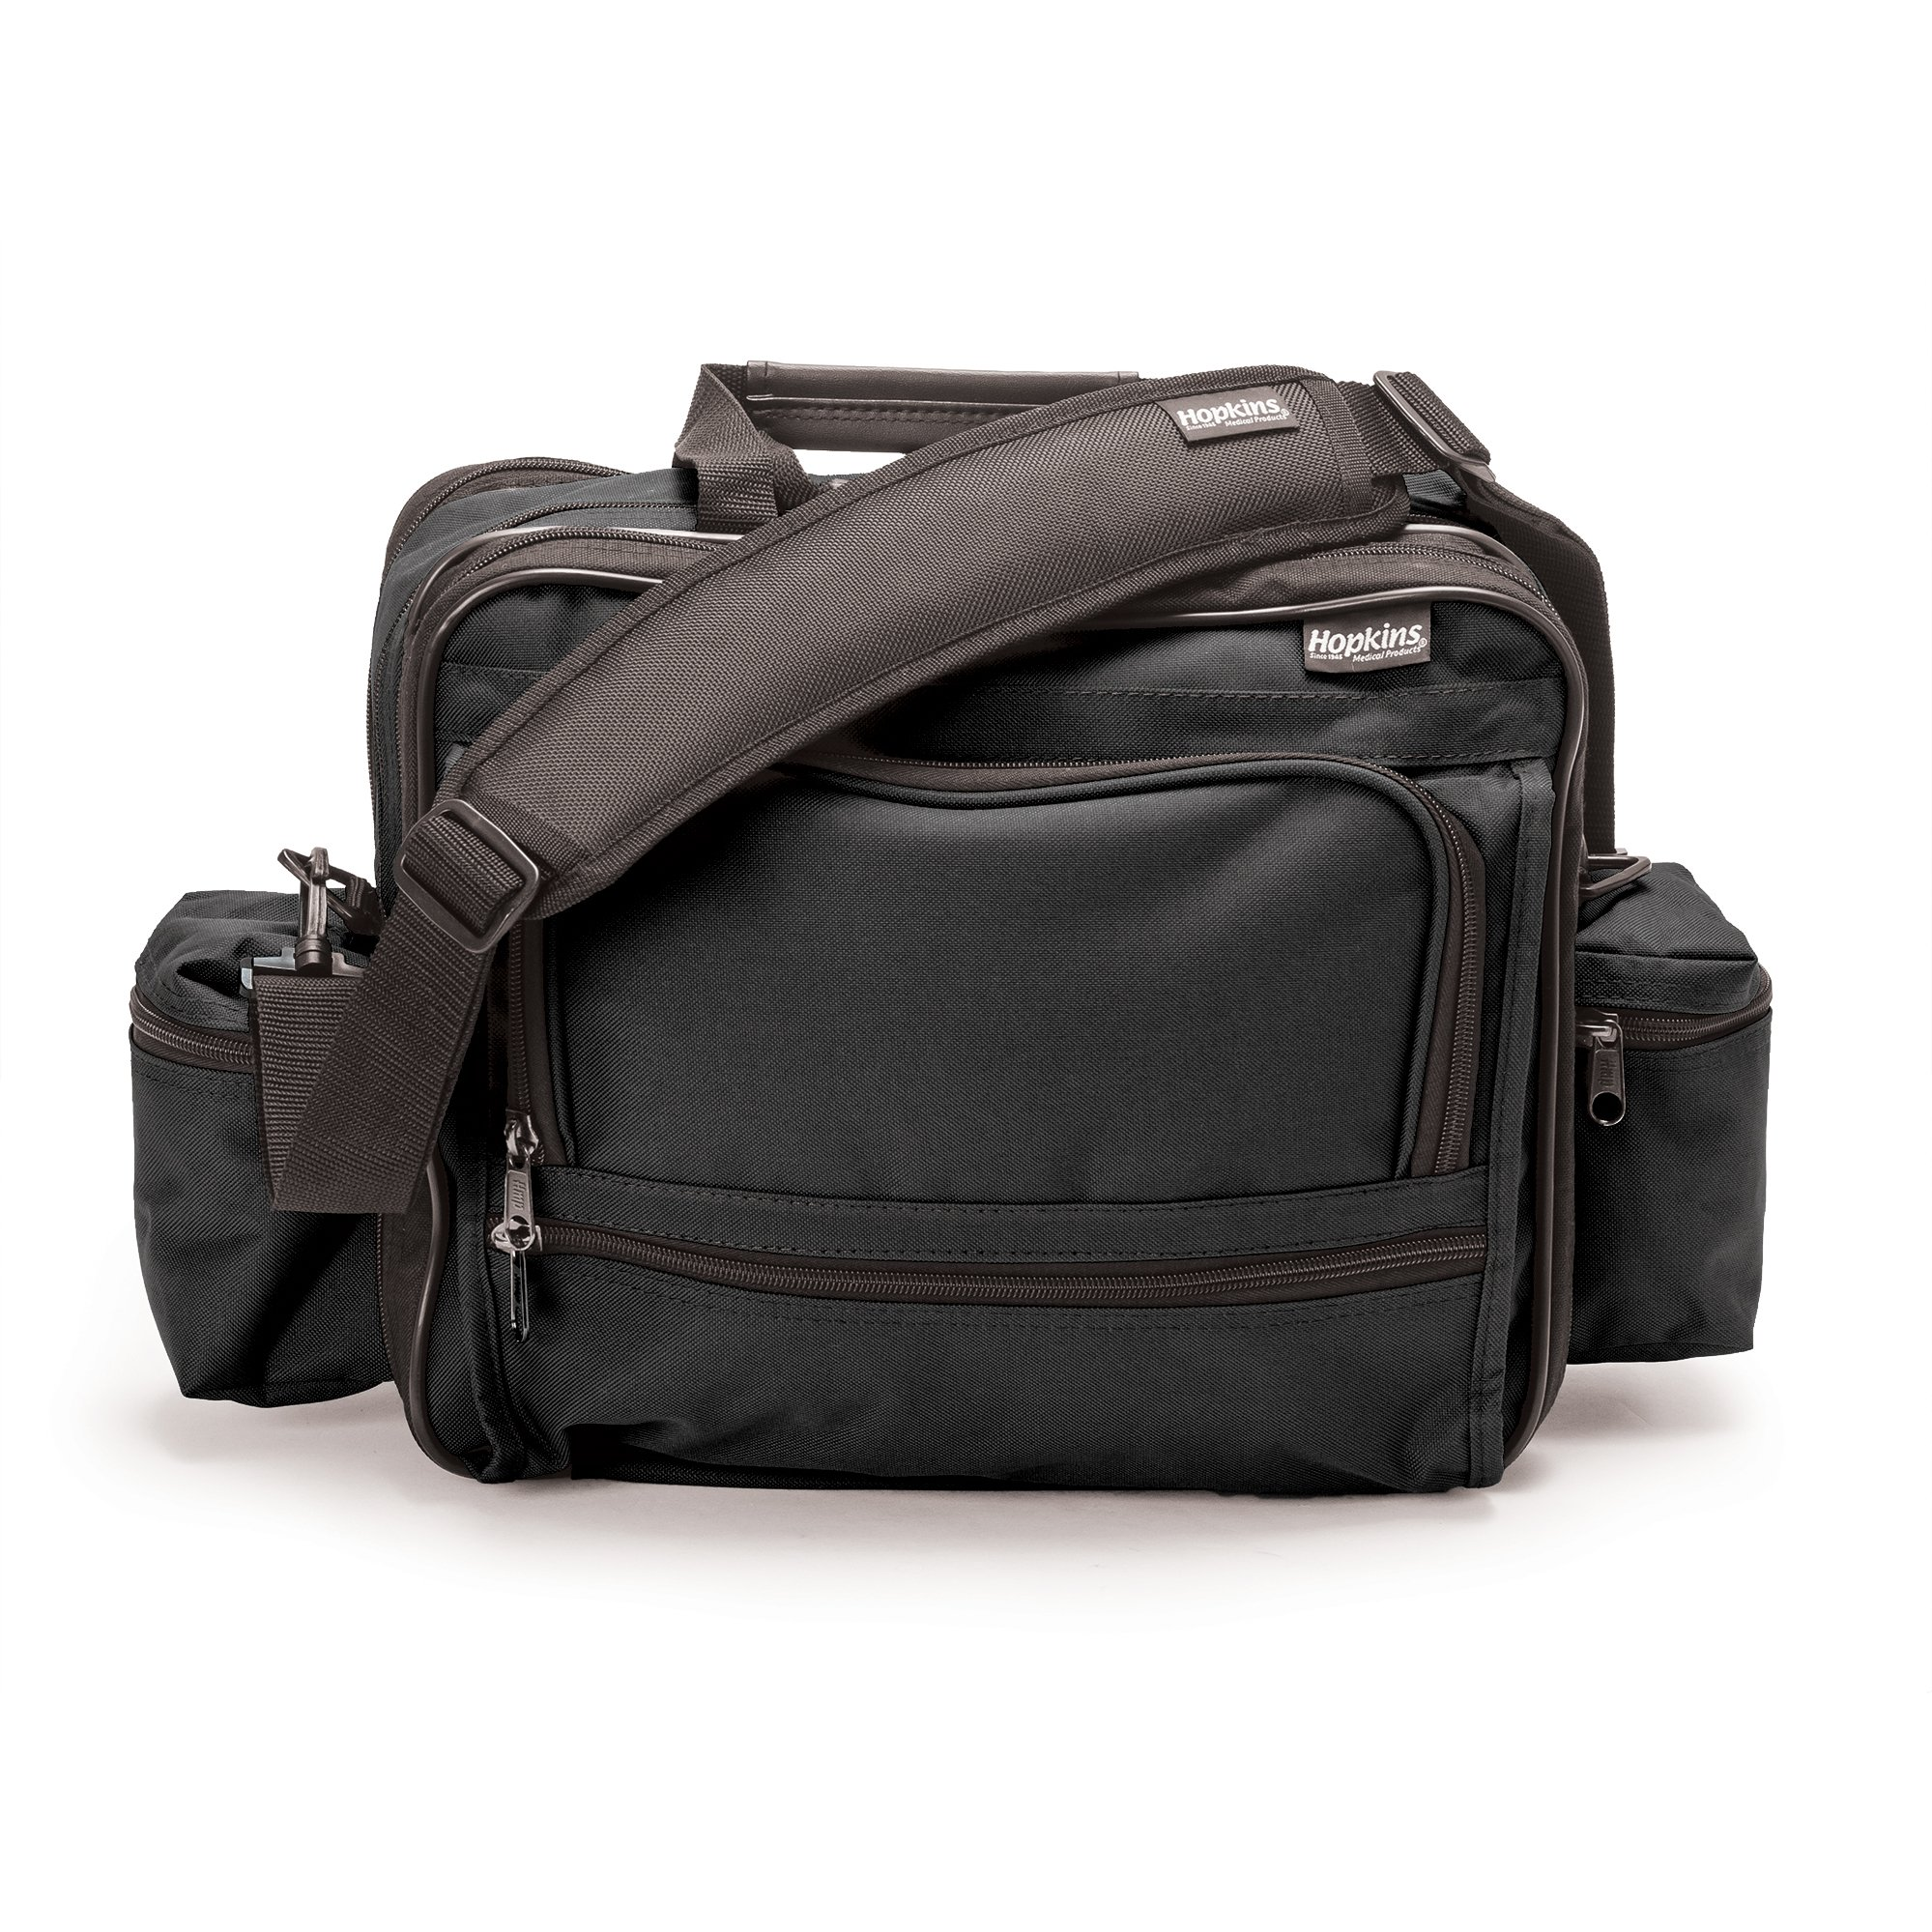 Hopkins Medical Products Mark V Shoulder Bag for Nurses and Home Health Professionals - Black